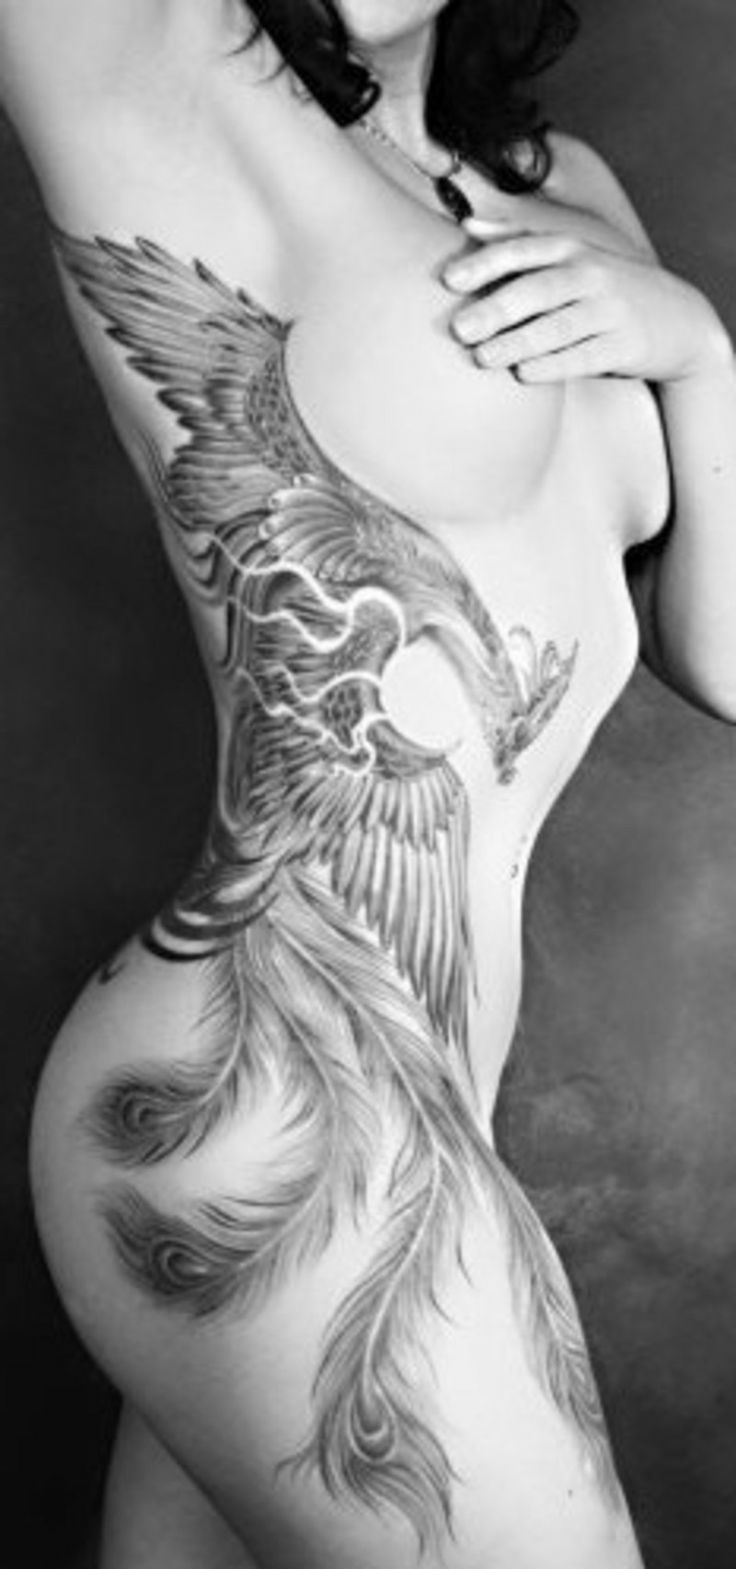 All tattoo design side tatoos - If You Re Looking For Phoenix Tattoo Meaning You Ve Come To The Right Place We Have Information On Phoenix Tattoo Meaning And Ideas